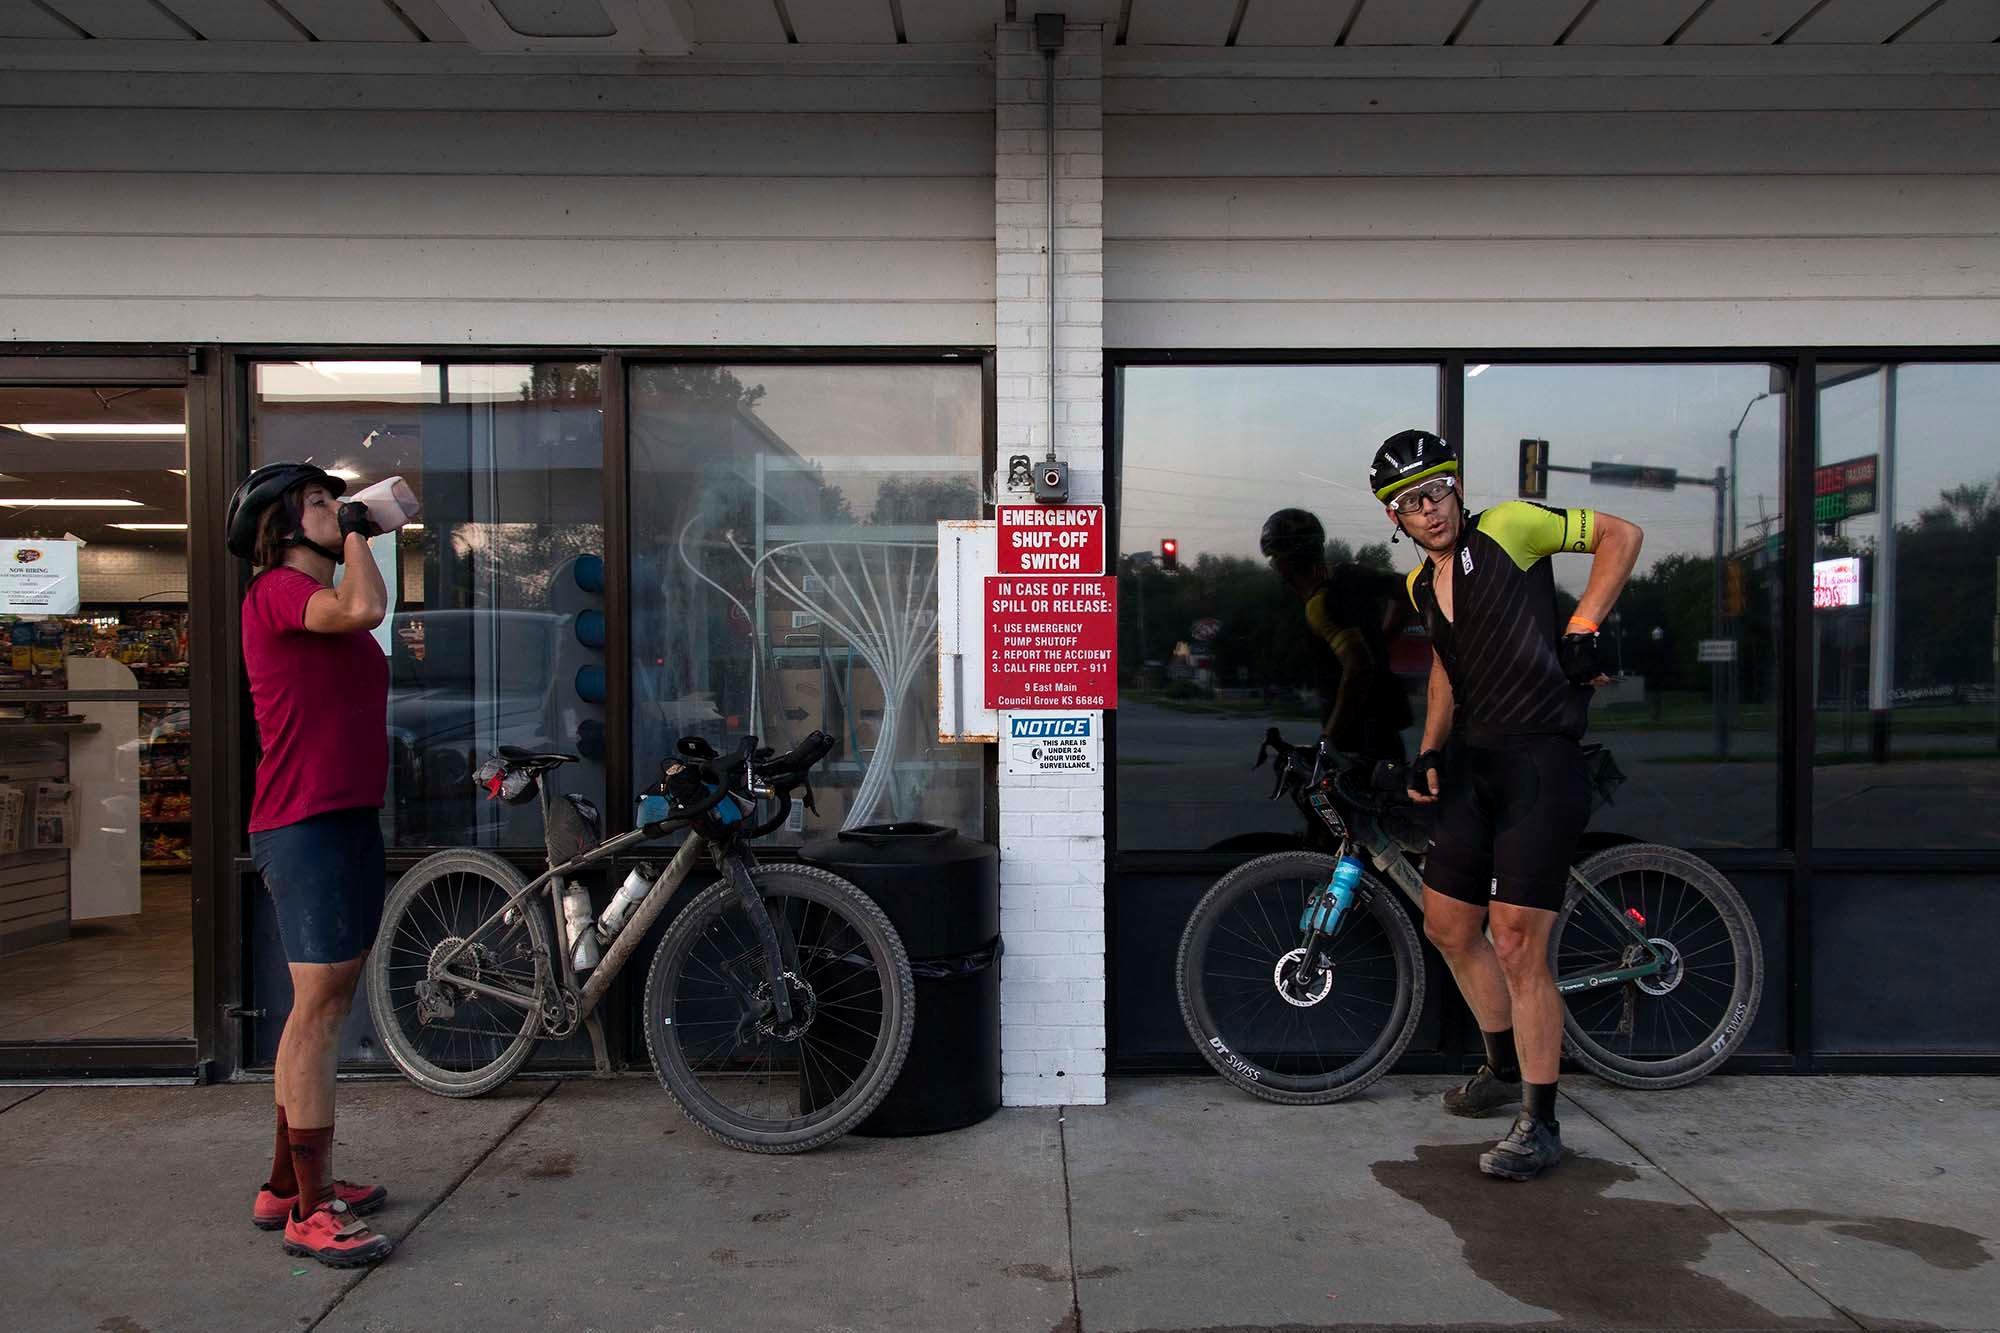 Lael Wilcox and Jeff Kerkove refuel at a gas station during the DKXL 2019. (Rugile Kaladyte)